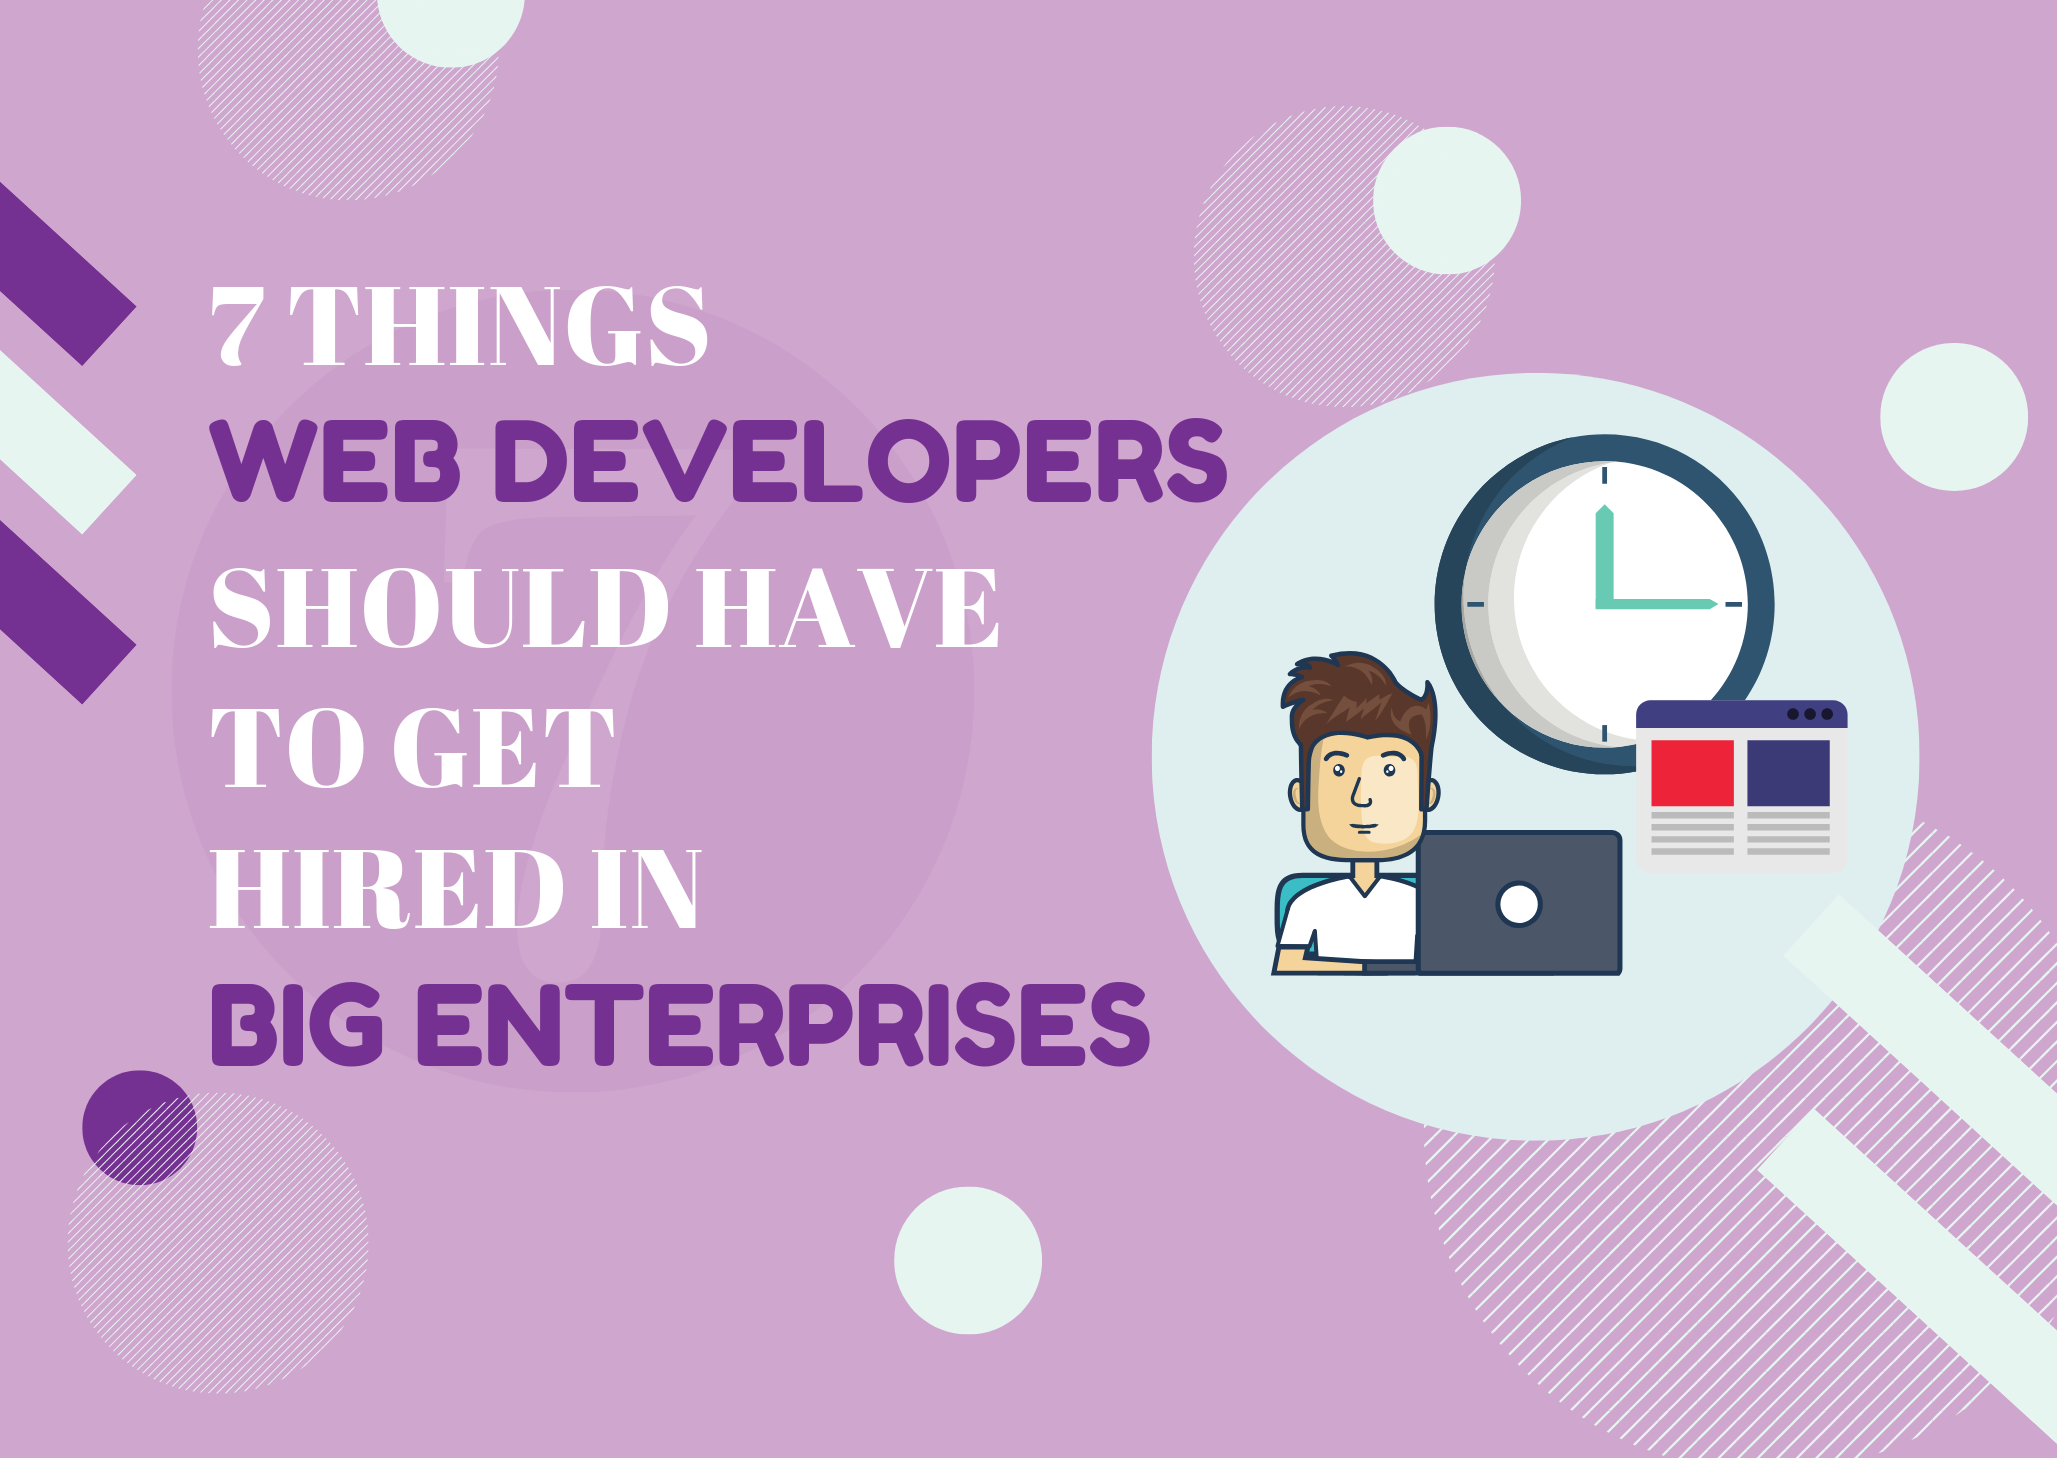 7 Things Web Developers Should Have To Get Hired In Big